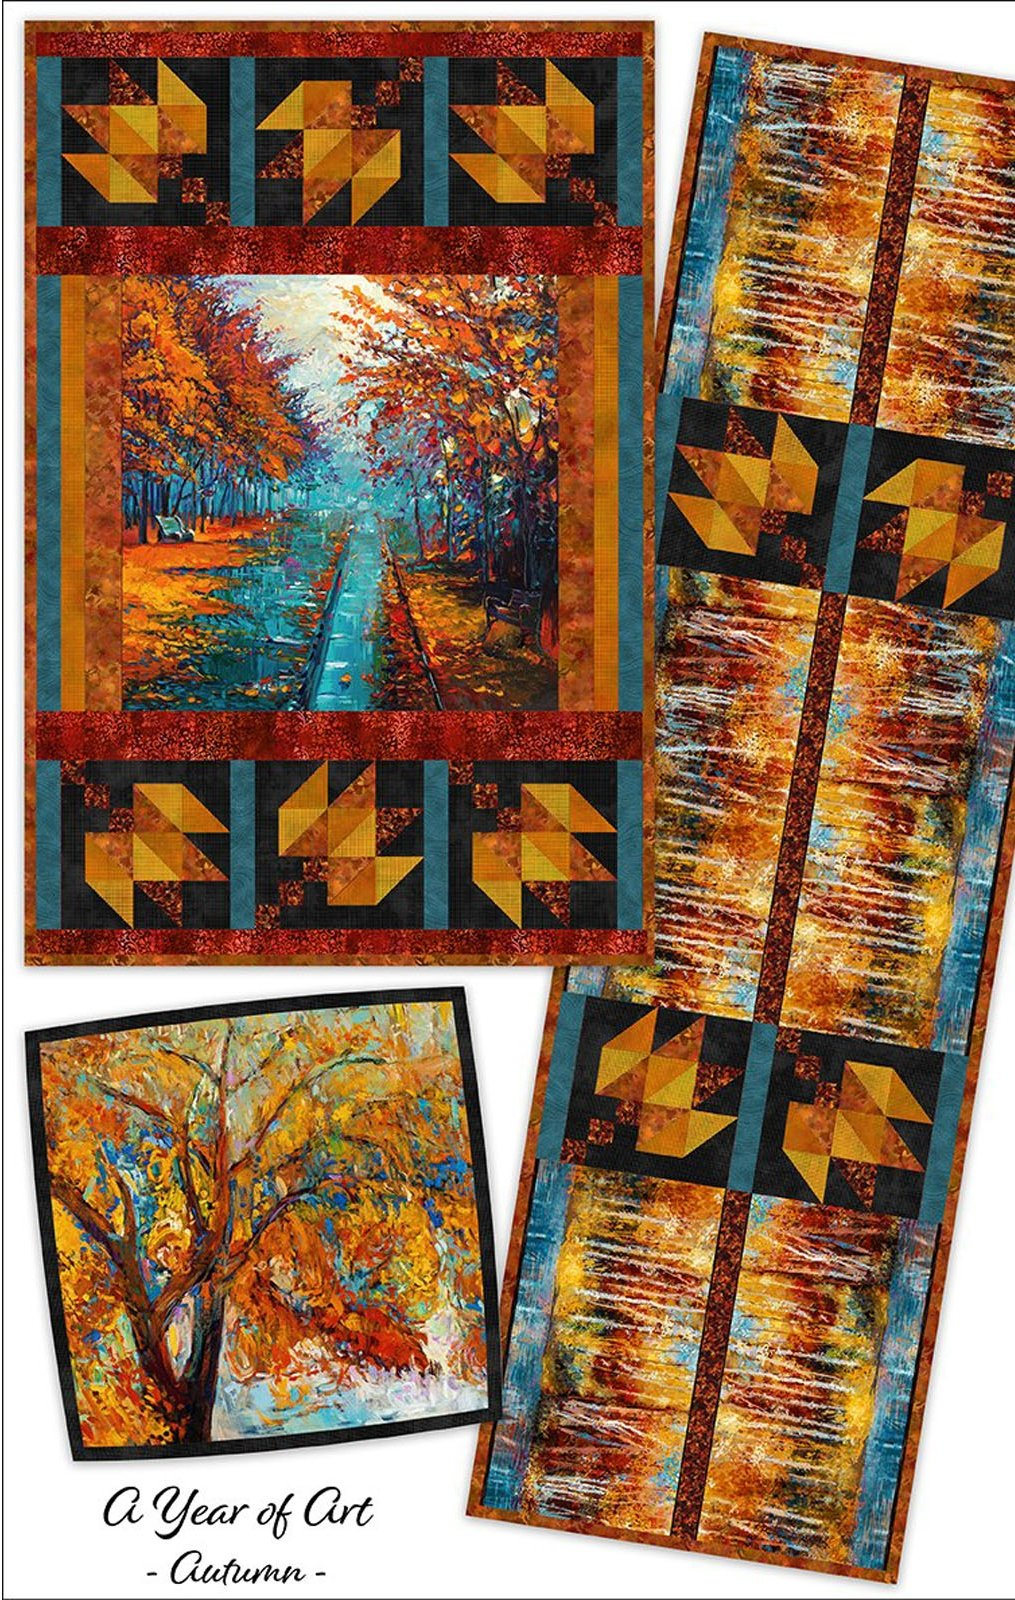 INTH-YOA A PATT - A YEAR OF ART - AUTUMN QUILT PATTERN - ARRIVING IN AUGUST 2022